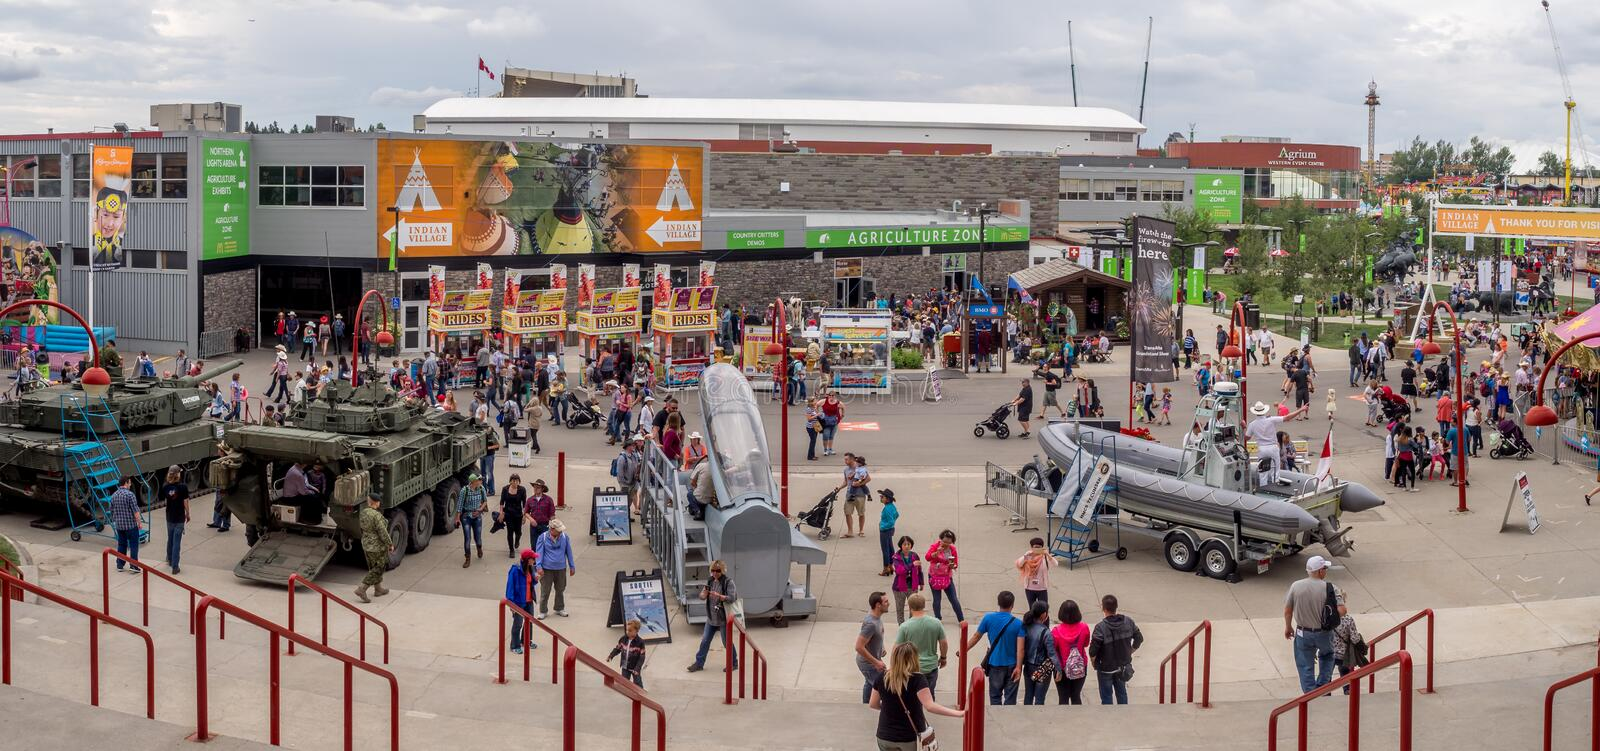 Panorama of the grounds at the Calgary Stampede royalty free stock photography